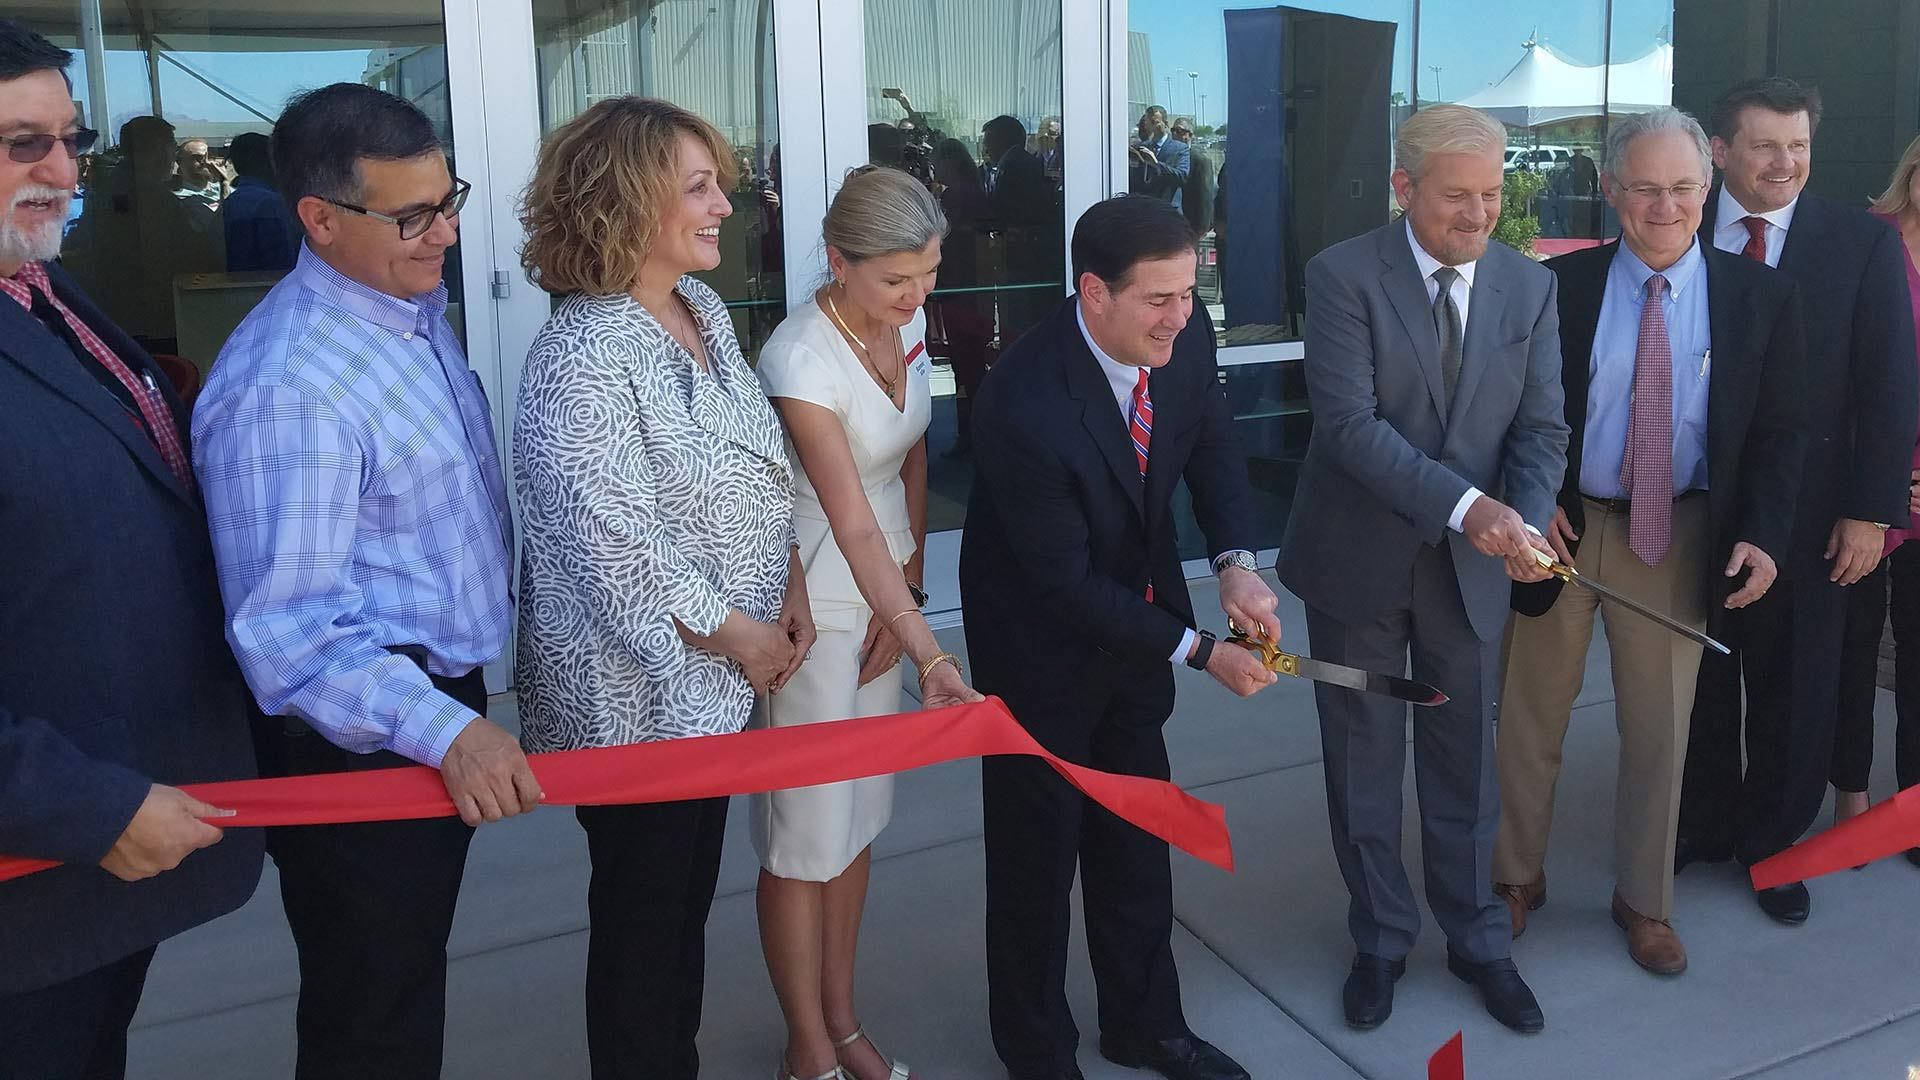 Local officials and Raytheon executives gather to cut the ribbon on the newest addition to Raytheon Missile System's Tucson facility.